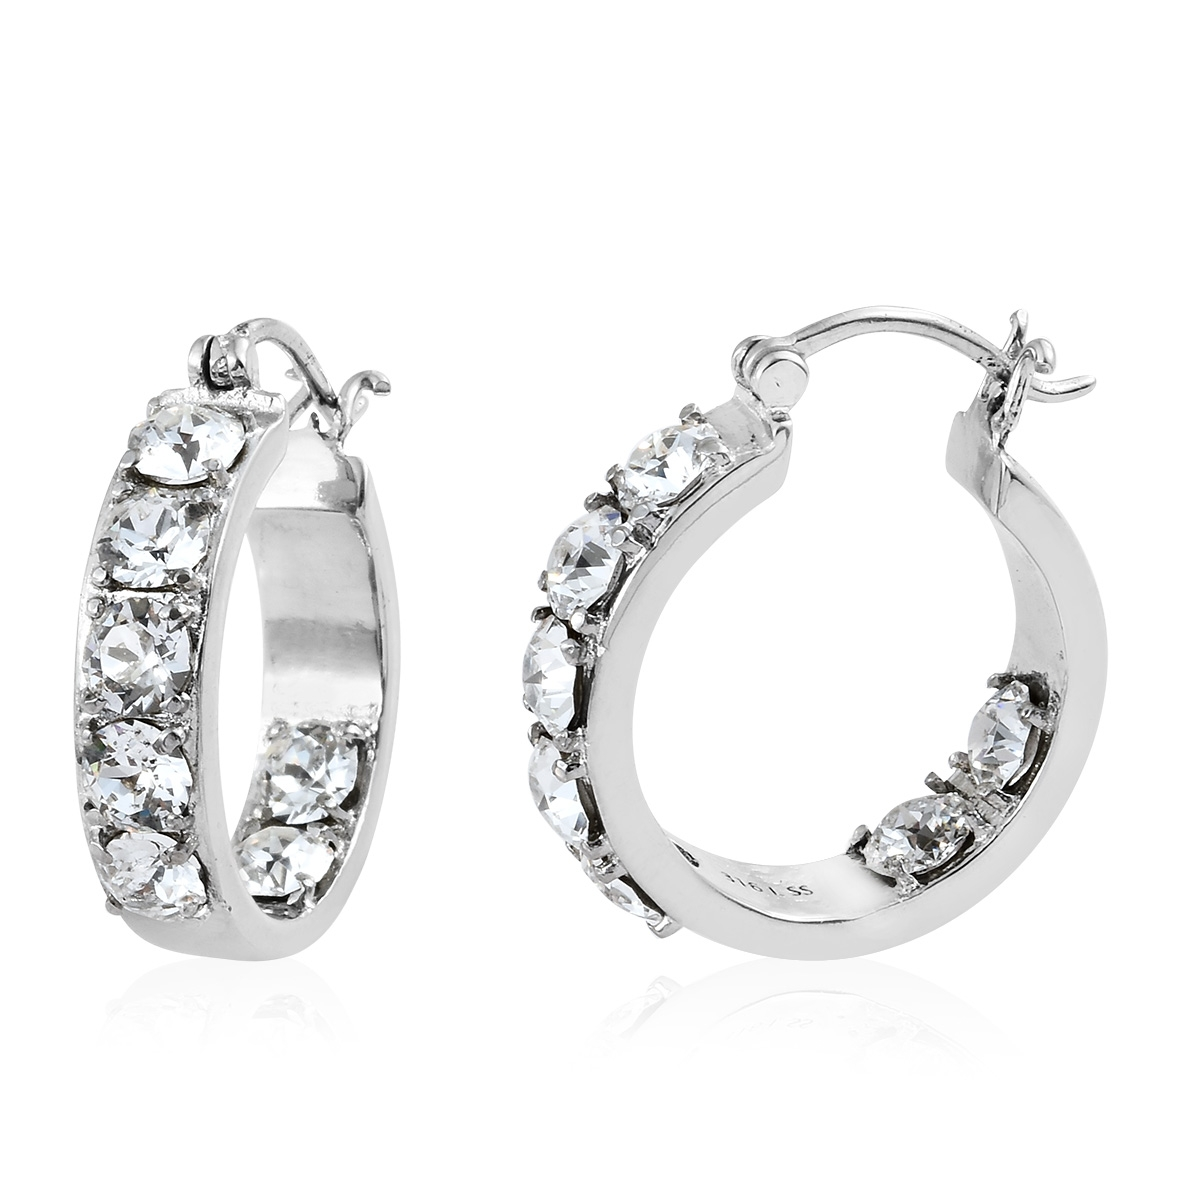 Stainless steel hoop earrings made with swarovski white for Swarovski jewelry online store